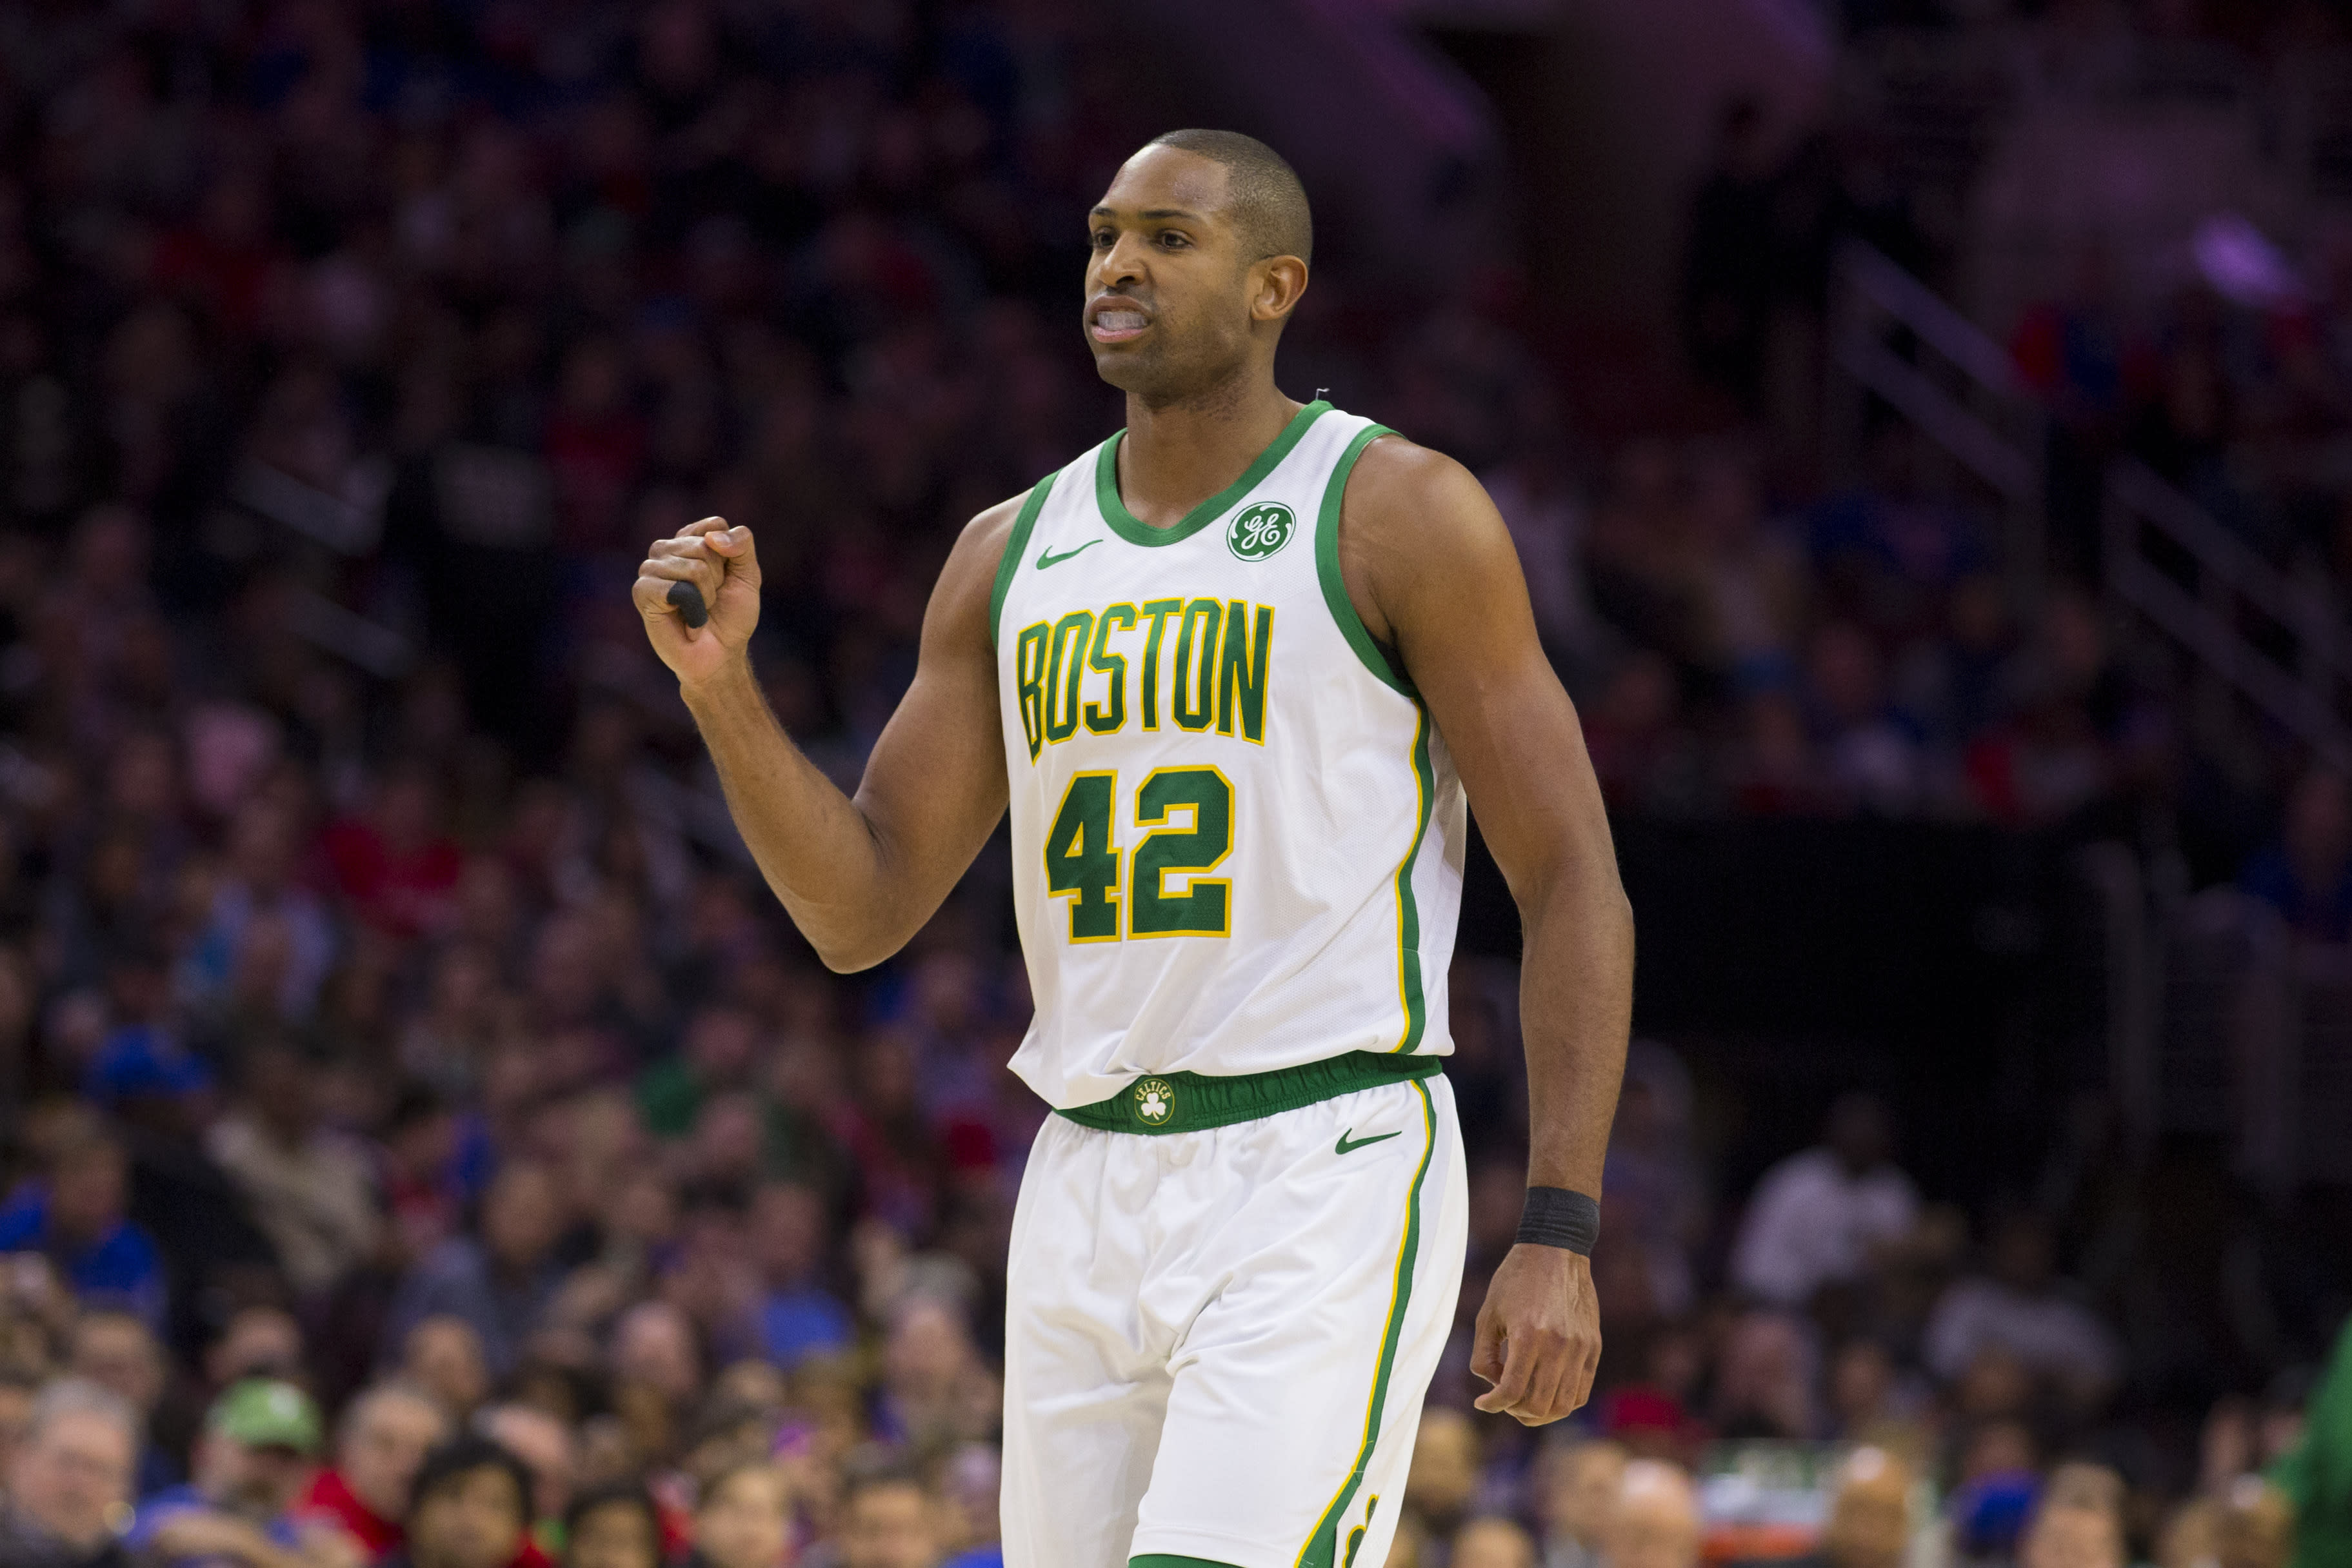 The thought of Al Horford on the Kings was fun while it lasted